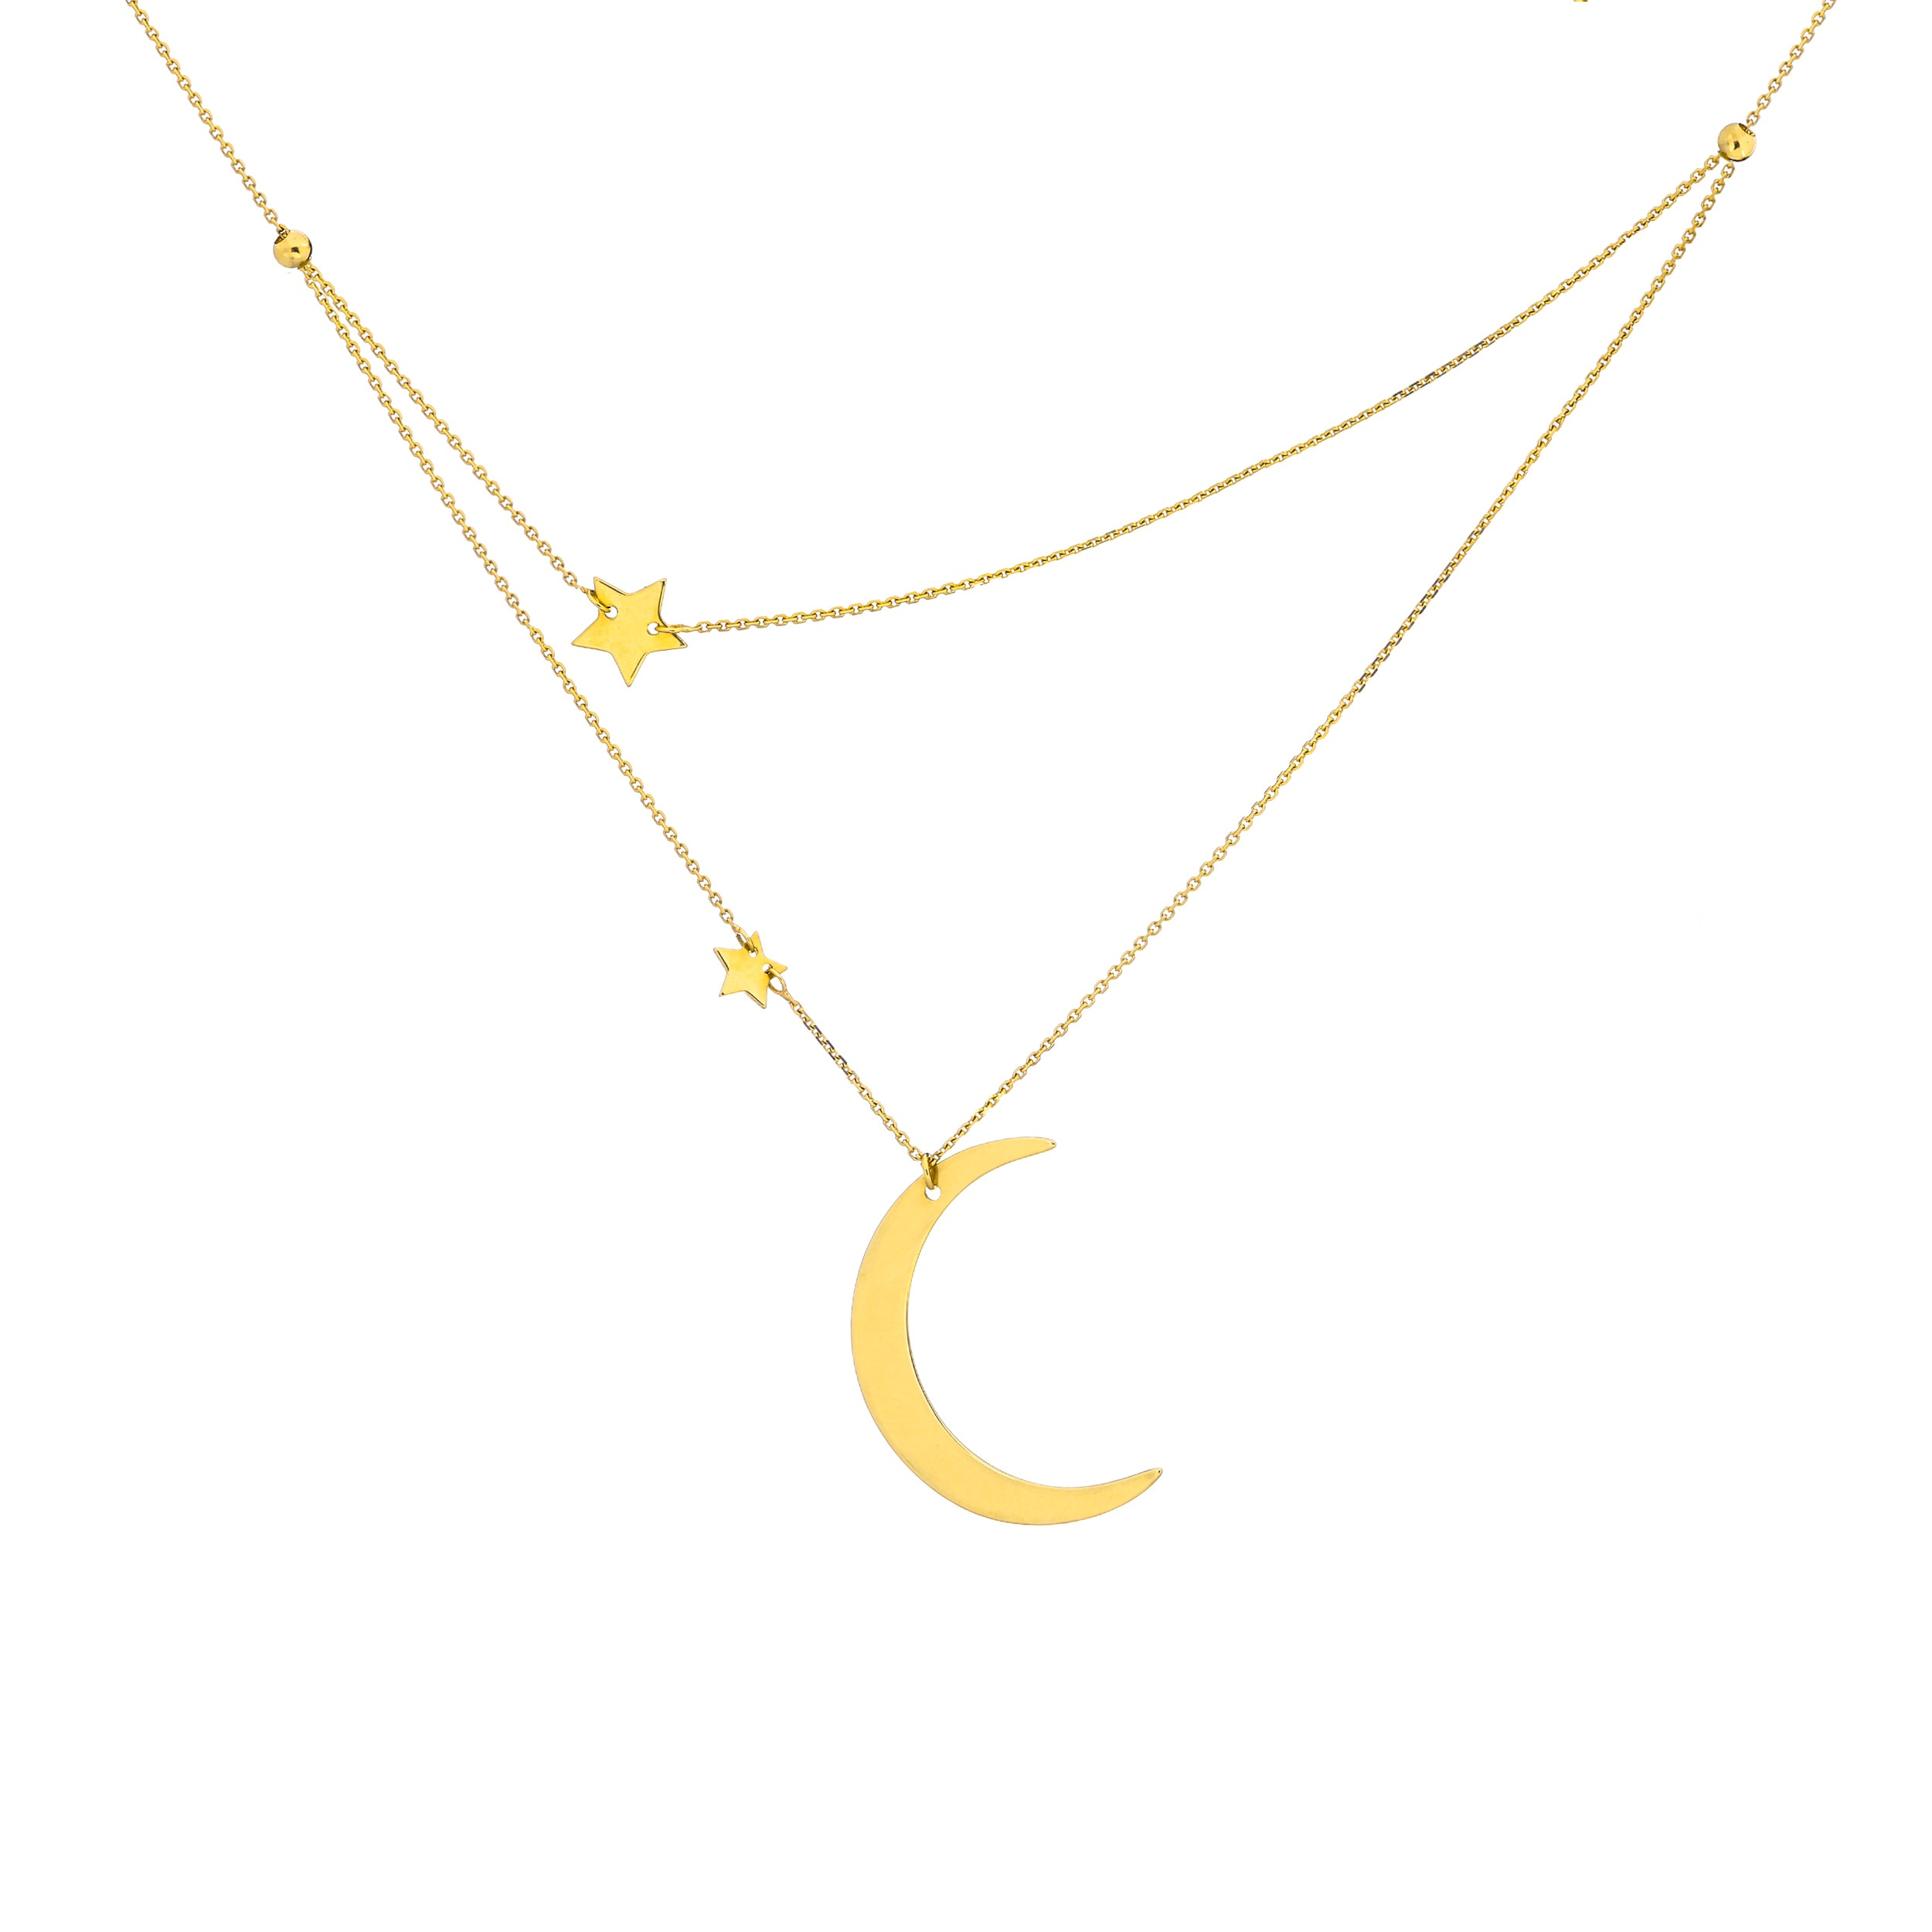 Zealmer Daycindy Double Layer Circle Bar Choker Necklace Gold Plated